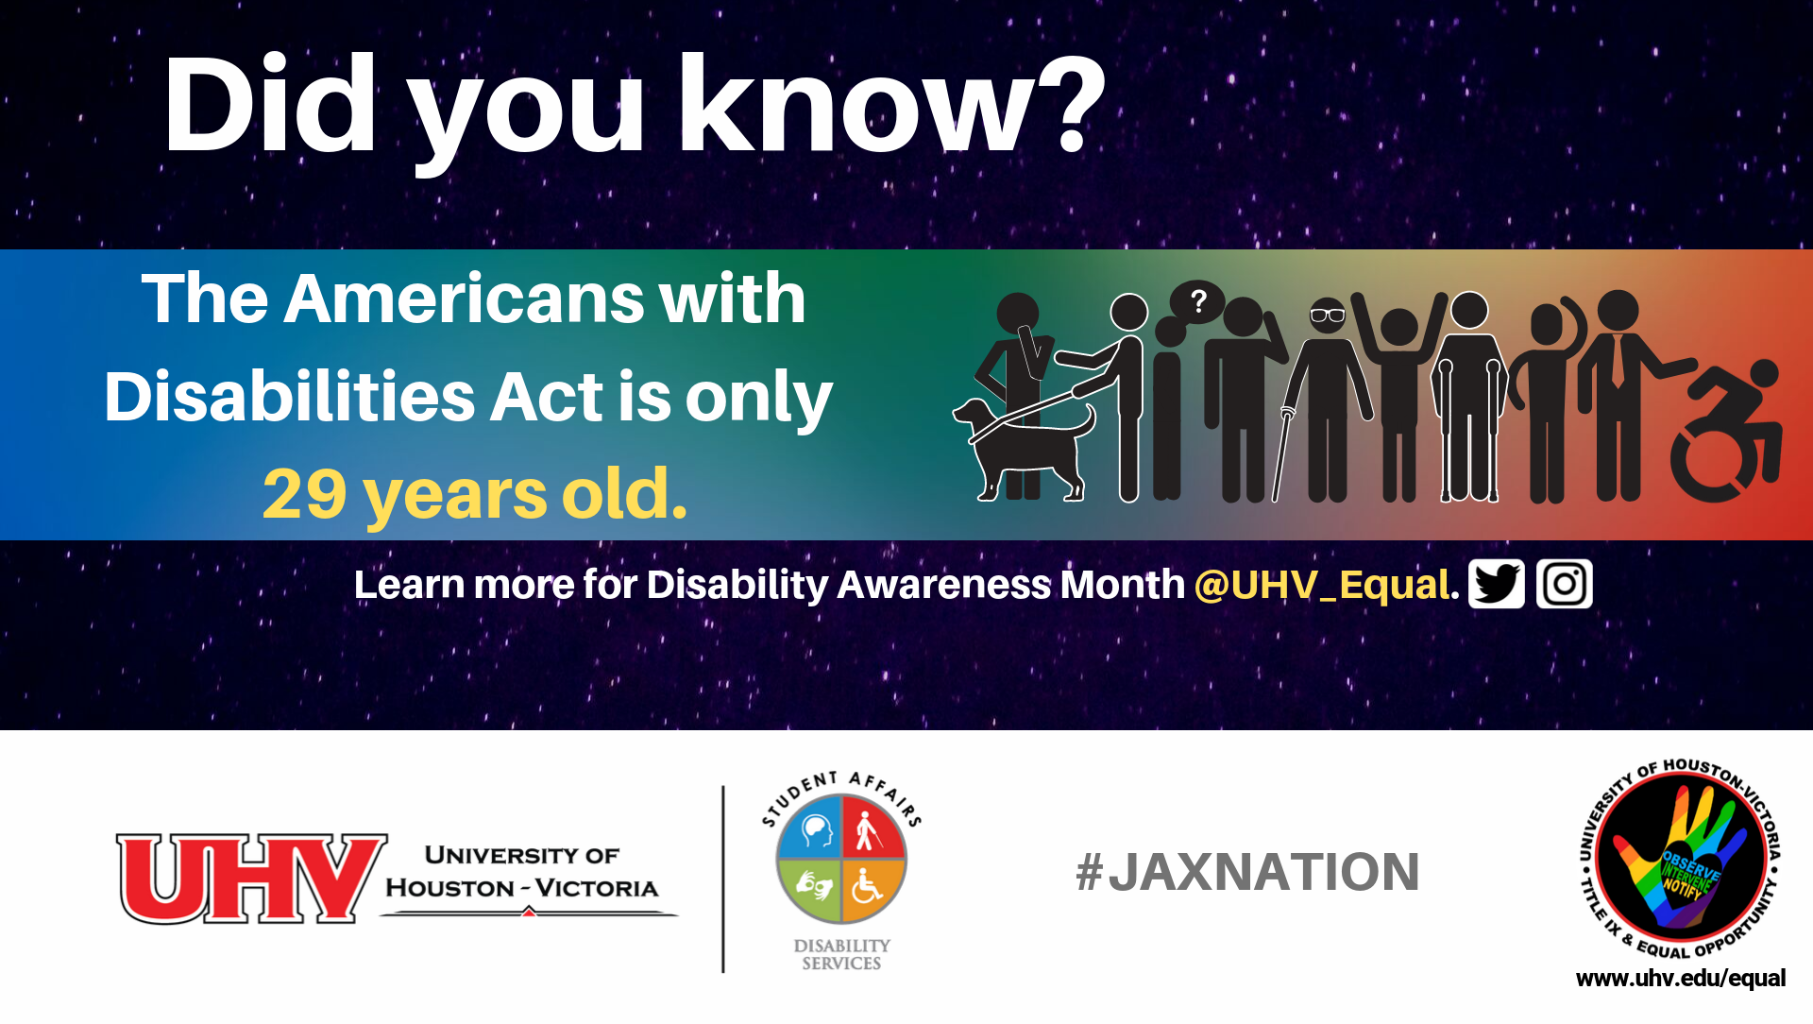 Did you know? The Americans with Disabilities Act is only 29 years old. Images of figurines showing people of various abilities. UHV Disability Services Logo. Learn more for Disability Awareness Month @UHV_Equal.#jaxnation. University of Houston-Victoria Title IX and Equal Opportunity Logo (rainbow hand with heart insert with words Observe, Intervene, Notify).